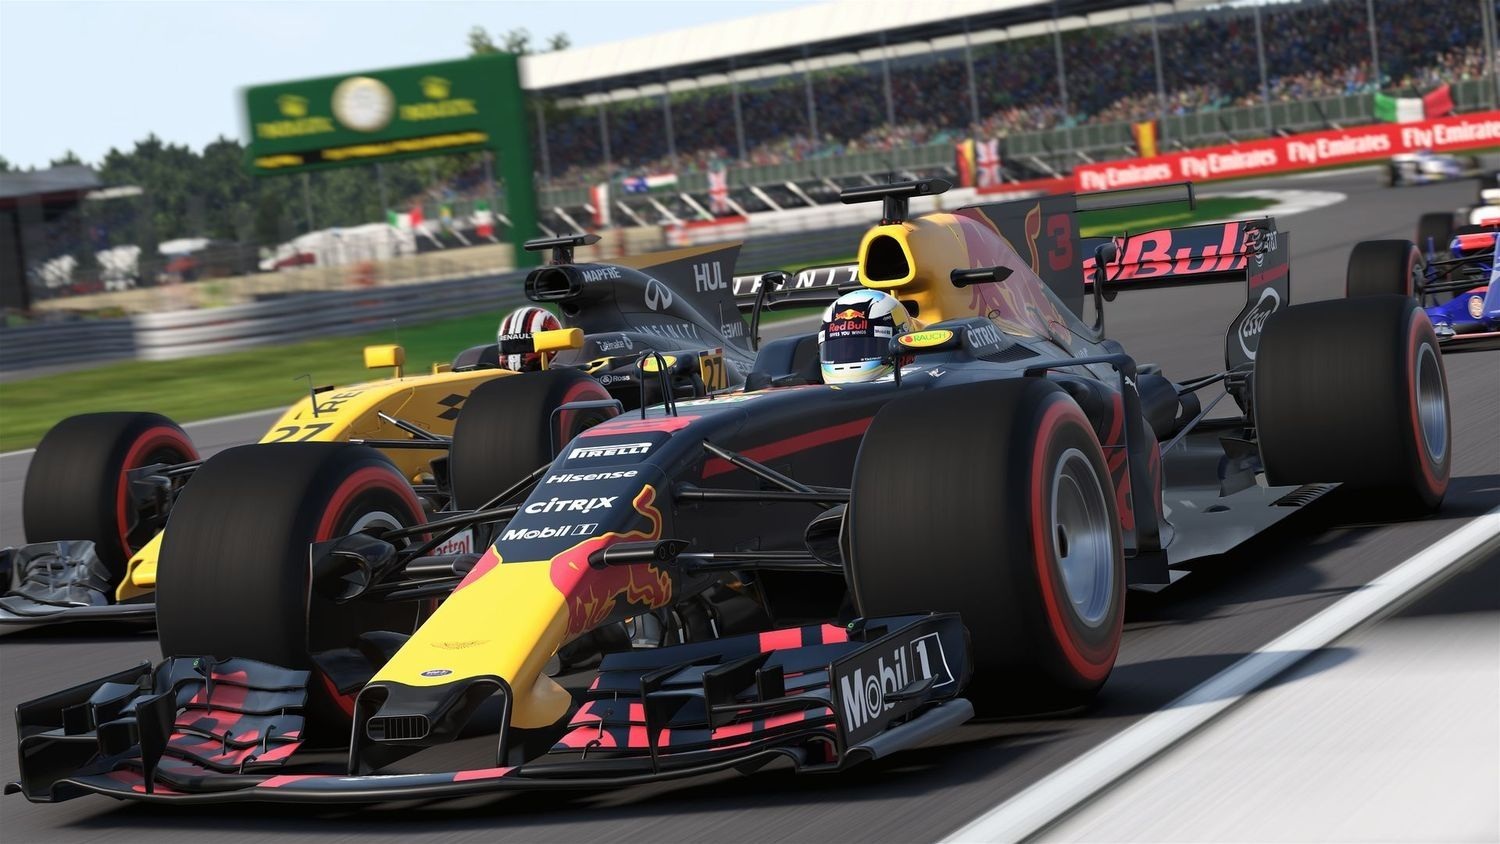 F1 2017 Special Edition (PC) - 7